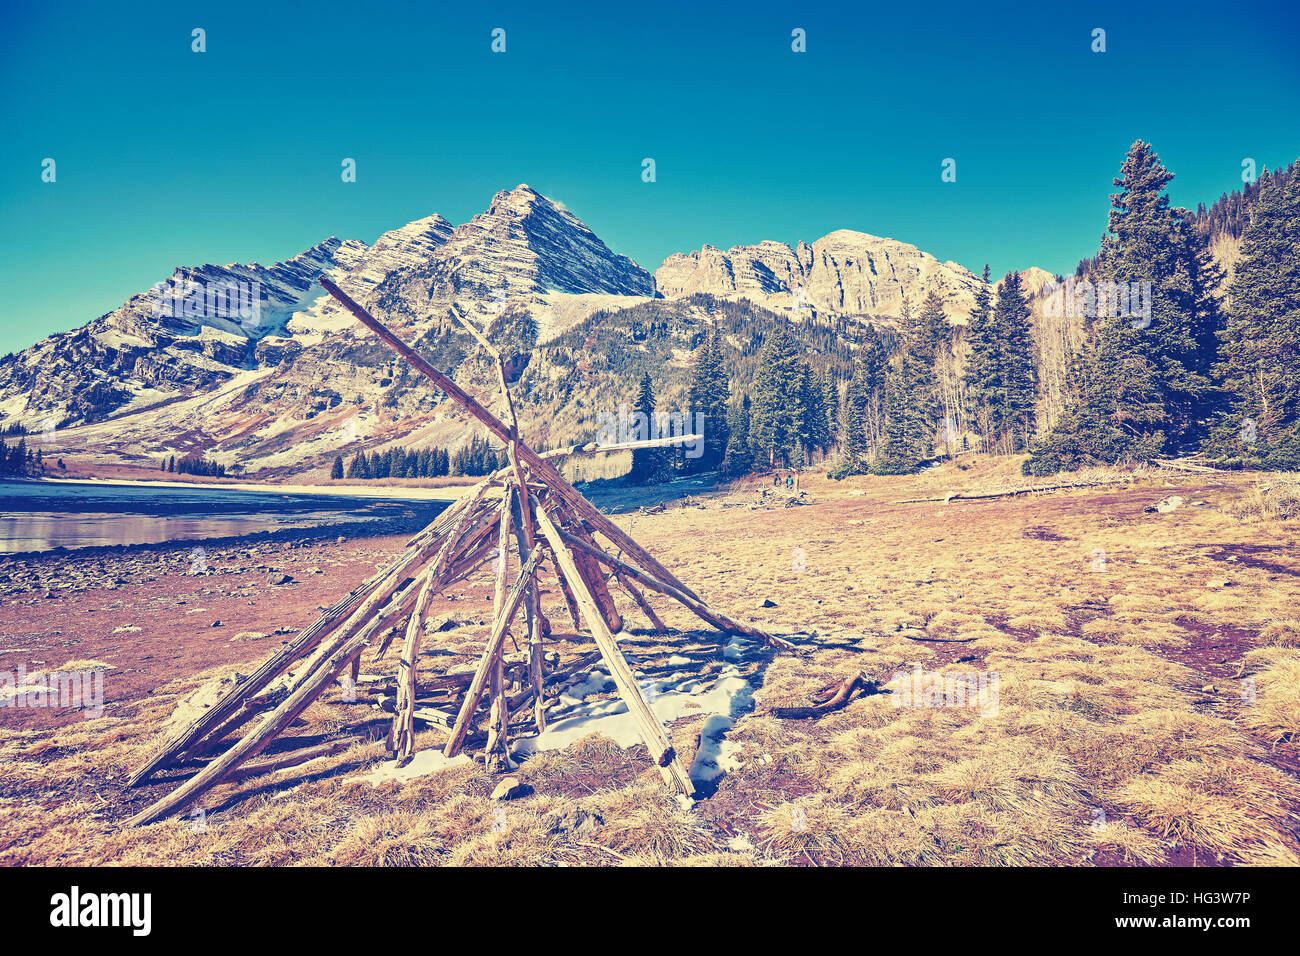 Vintage toned mountain campsite with campfire at Maroon Bells, Aspen in Colorado, USA. - Stock Image